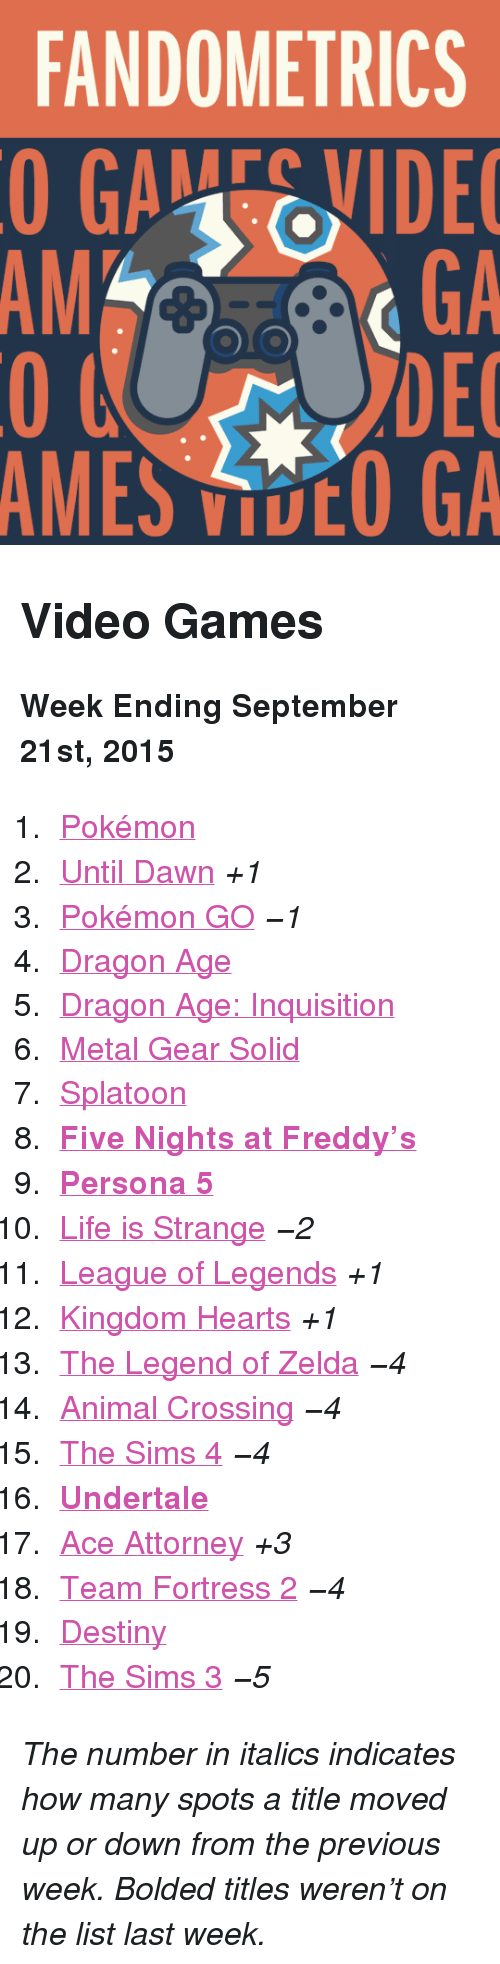 "Five Nights: FANDOMETRICS  GAEVIDE  GA  DEC  AMES VOO GA  AM <h2>Video Games</h2><p><b>Week Ending September 21st, 2015</b></p><ol><li><a href=""http://www.tumblr.com/search/pokemon"">Pokémon</a></li>  <li><a href=""http://www.tumblr.com/search/until%20dawn"">Until Dawn</a> <i>+1</i></li>  <li><a href=""http://www.tumblr.com/search/pokemon%20go"">Pokémon GO</a> <i>−1</i></li>  <li><a href=""http://www.tumblr.com/search/dragon%20age"">Dragon Age</a></li>  <li><a href=""http://www.tumblr.com/search/dragon%20age%20inquisition"">Dragon Age: Inquisition</a></li>  <li><a href=""http://www.tumblr.com/search/metal%20gear%20solid"">Metal Gear Solid</a></li>  <li><a href=""http://www.tumblr.com/search/splatoon"">Splatoon</a></li>  <li><a href=""http://www.tumblr.com/search/five%20nights%20at%20freddy's""><b>Five Nights at Freddy&rsquo;s</b></a></li>  <li><a href=""http://www.tumblr.com/search/persona%205""><b>Persona 5</b></a></li>  <li><a href=""http://www.tumblr.com/search/life%20is%20strange"">Life is Strange</a> <i>−2</i></li>  <li><a href=""http://www.tumblr.com/search/league%20of%20legends"">League of Legends</a> <i>+1</i></li>  <li><a href=""http://www.tumblr.com/search/kingdom%20hearts"">Kingdom Hearts</a> <i>+1</i></li>  <li><a href=""http://www.tumblr.com/search/legend%20of%20zelda"">The Legend of Zelda</a> <i>−4</i></li>  <li><a href=""http://www.tumblr.com/search/acnl"">Animal Crossing</a> <i>−4</i></li>  <li><a href=""http://www.tumblr.com/search/sims%204"">The Sims 4</a> <i>−4</i></li>  <li><a href=""http://www.tumblr.com/search/undertale""><b>Undertale</b></a></li>  <li><a href=""http://www.tumblr.com/search/ace%20attorney"">Ace Attorney</a> <i>+3</i></li>  <li><a href=""http://www.tumblr.com/search/tf2"">Team Fortress 2</a> <i>−4</i></li>  <li><a href=""http://www.tumblr.com/search/destiny"">Destiny</a></li>  <li><a href=""http://www.tumblr.com/search/sims%203"">The Sims 3</a> <i>−5</i></li></ol><p><i>The number in italics indicates how many spots a title moved up or down from the previous week. Bolded titles weren't on the list last week.</i></p>"